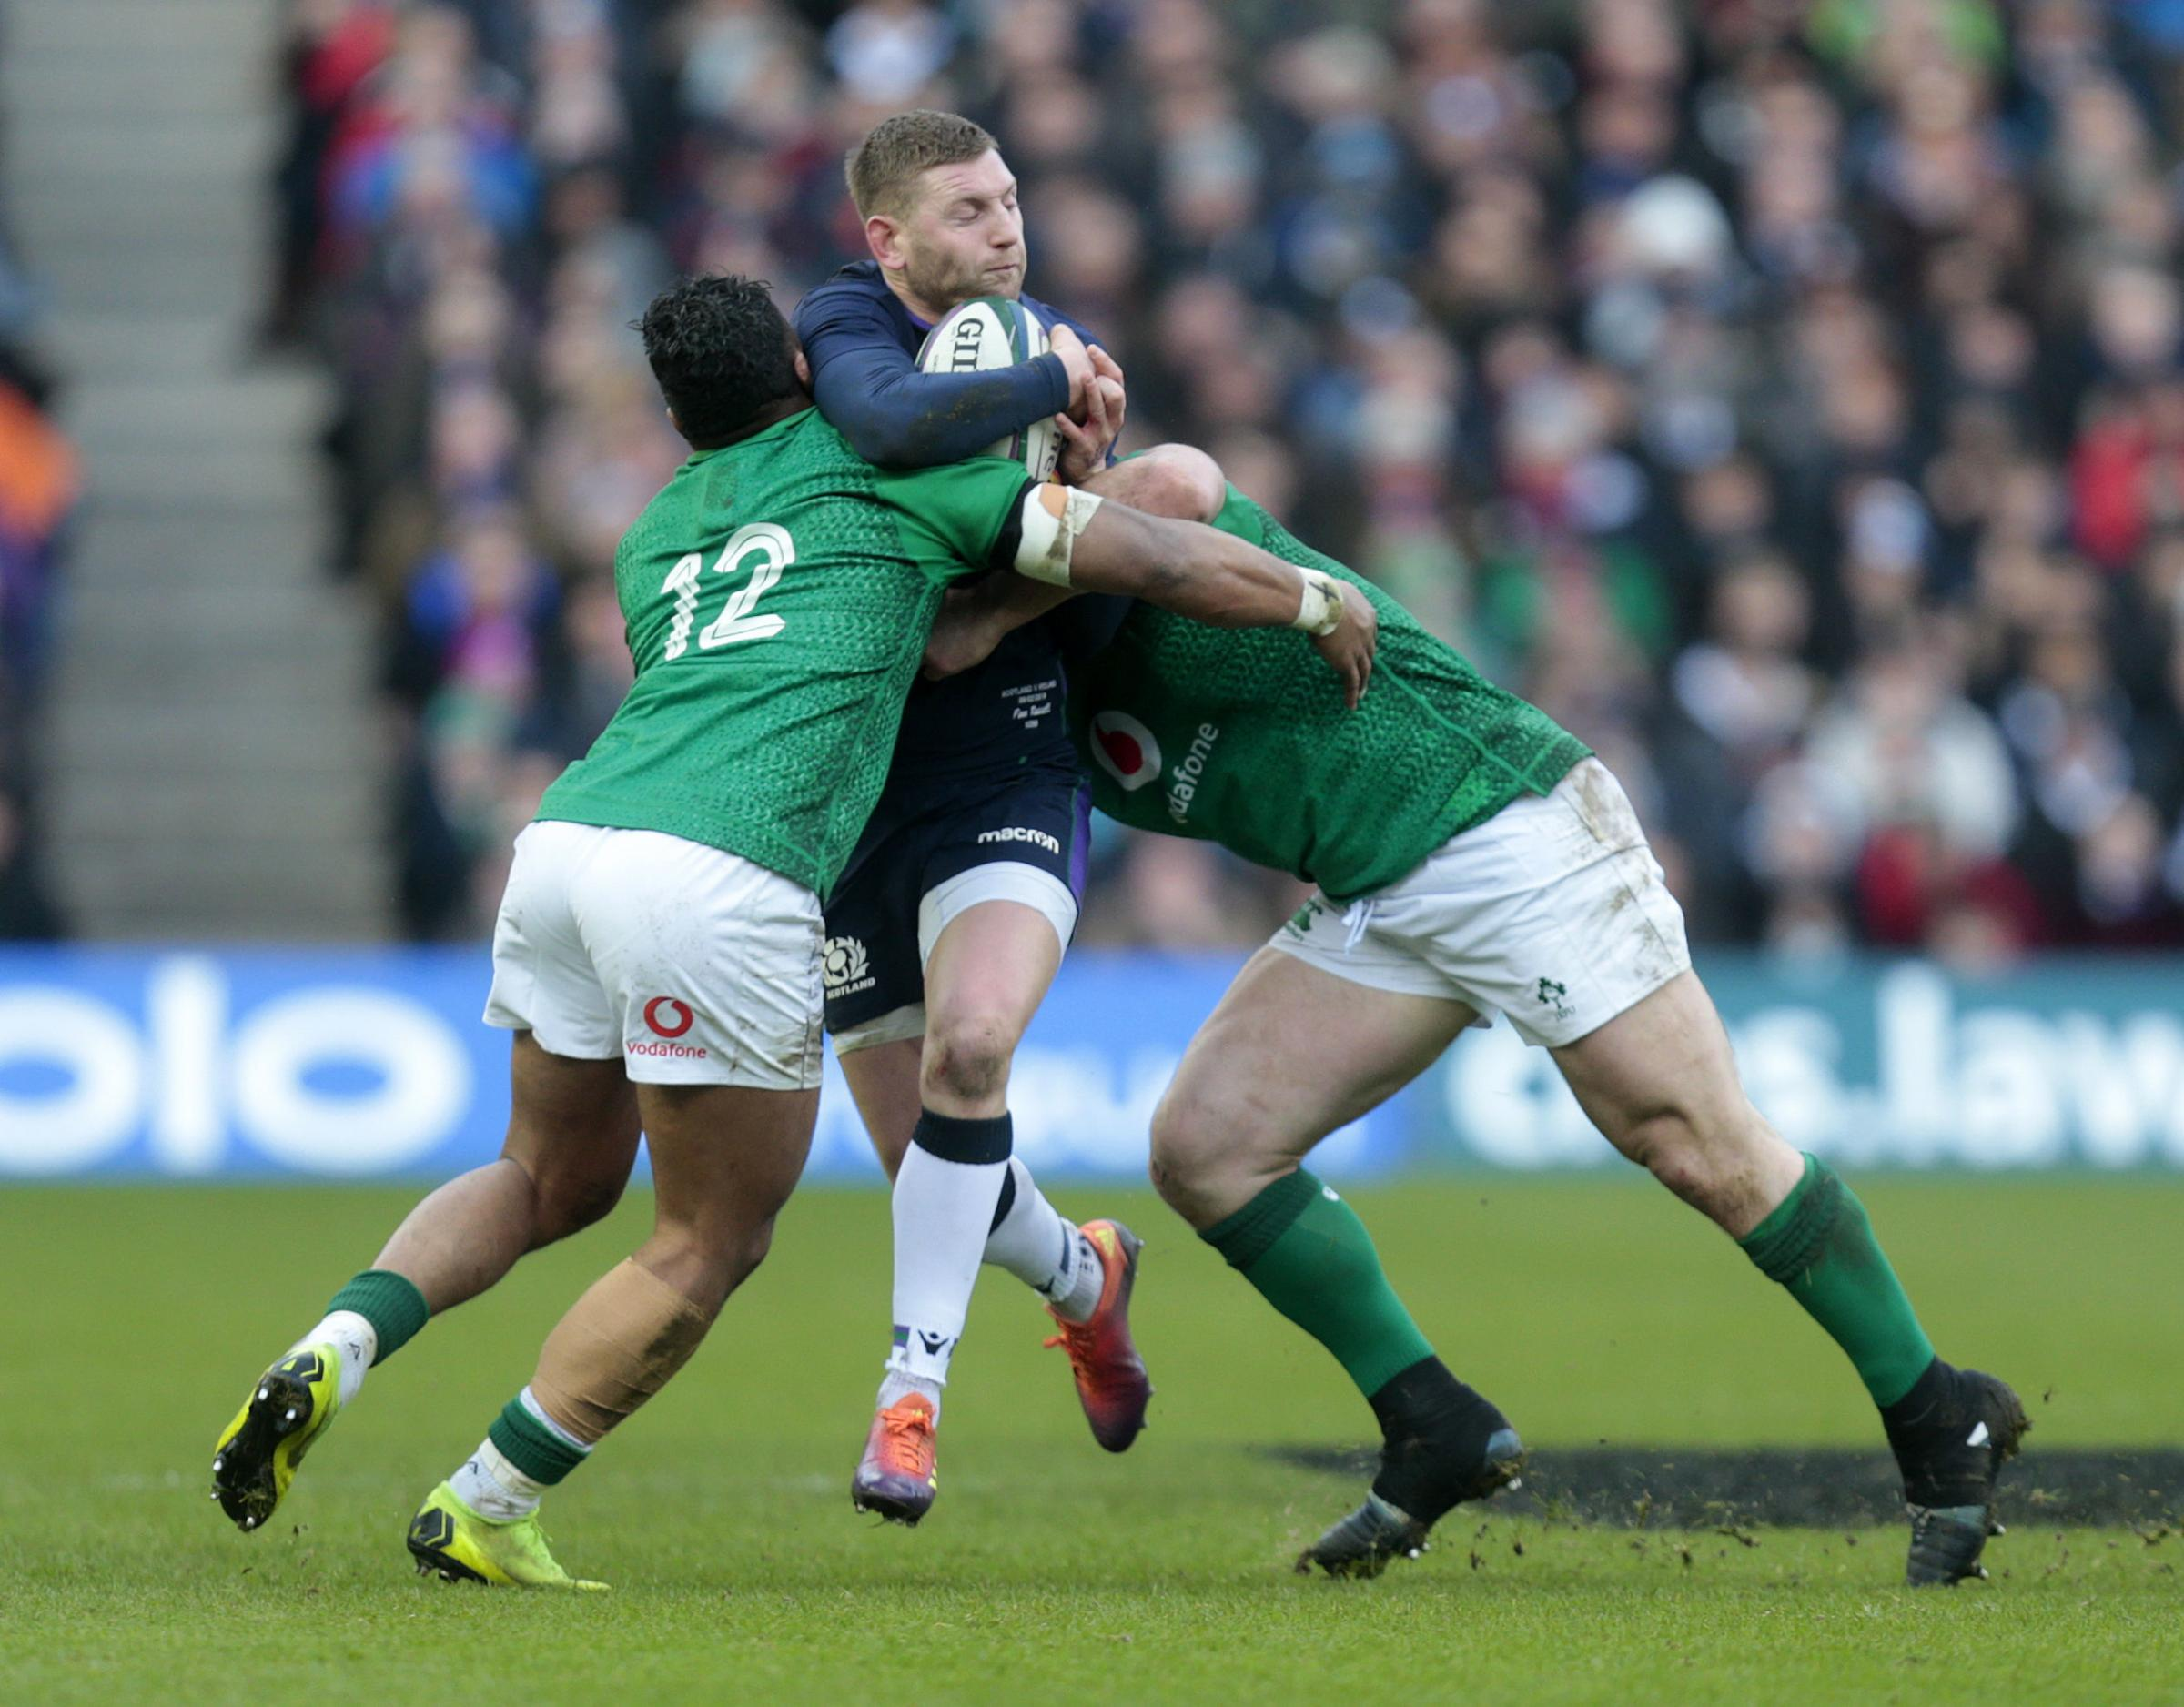 Scotland's Rhys Finn Russell (centre) vies with Ireland's Bundee Aki (left) and Cian Healy during the Guinness Six Nations match at BT Murrayfield, Edinburgh. PRESS ASSOCIATION Photo. Picture date: Saturday February 9, 2019. See PA story RUGBYU Sc